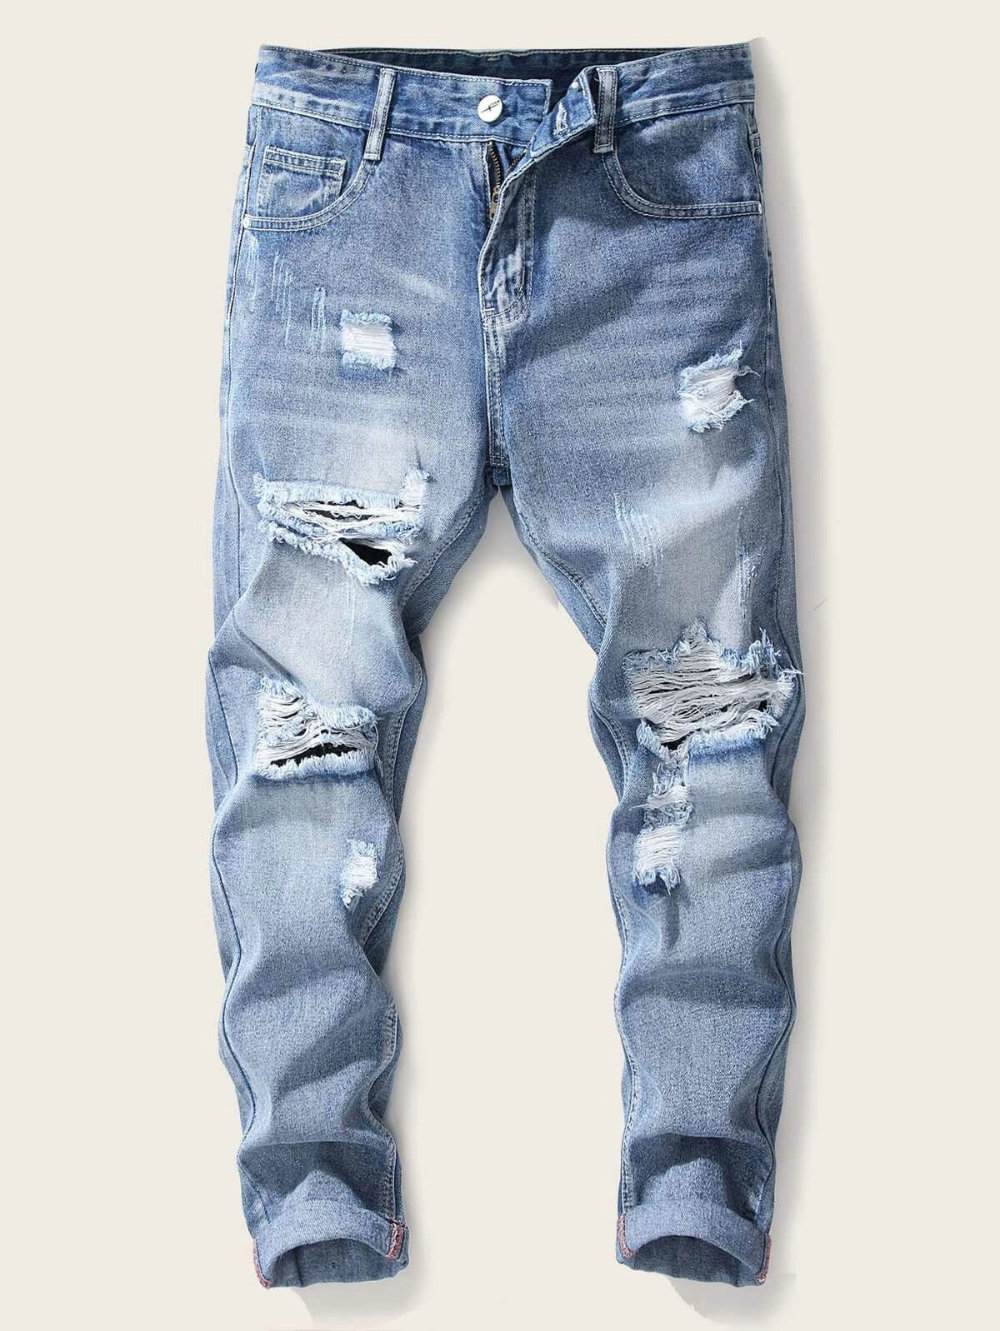 Guys Ladder Distressed Jeans Ripped Jeans Men Distressed Jeans Mens Clothing Sale [ 1331 x 1000 Pixel ]